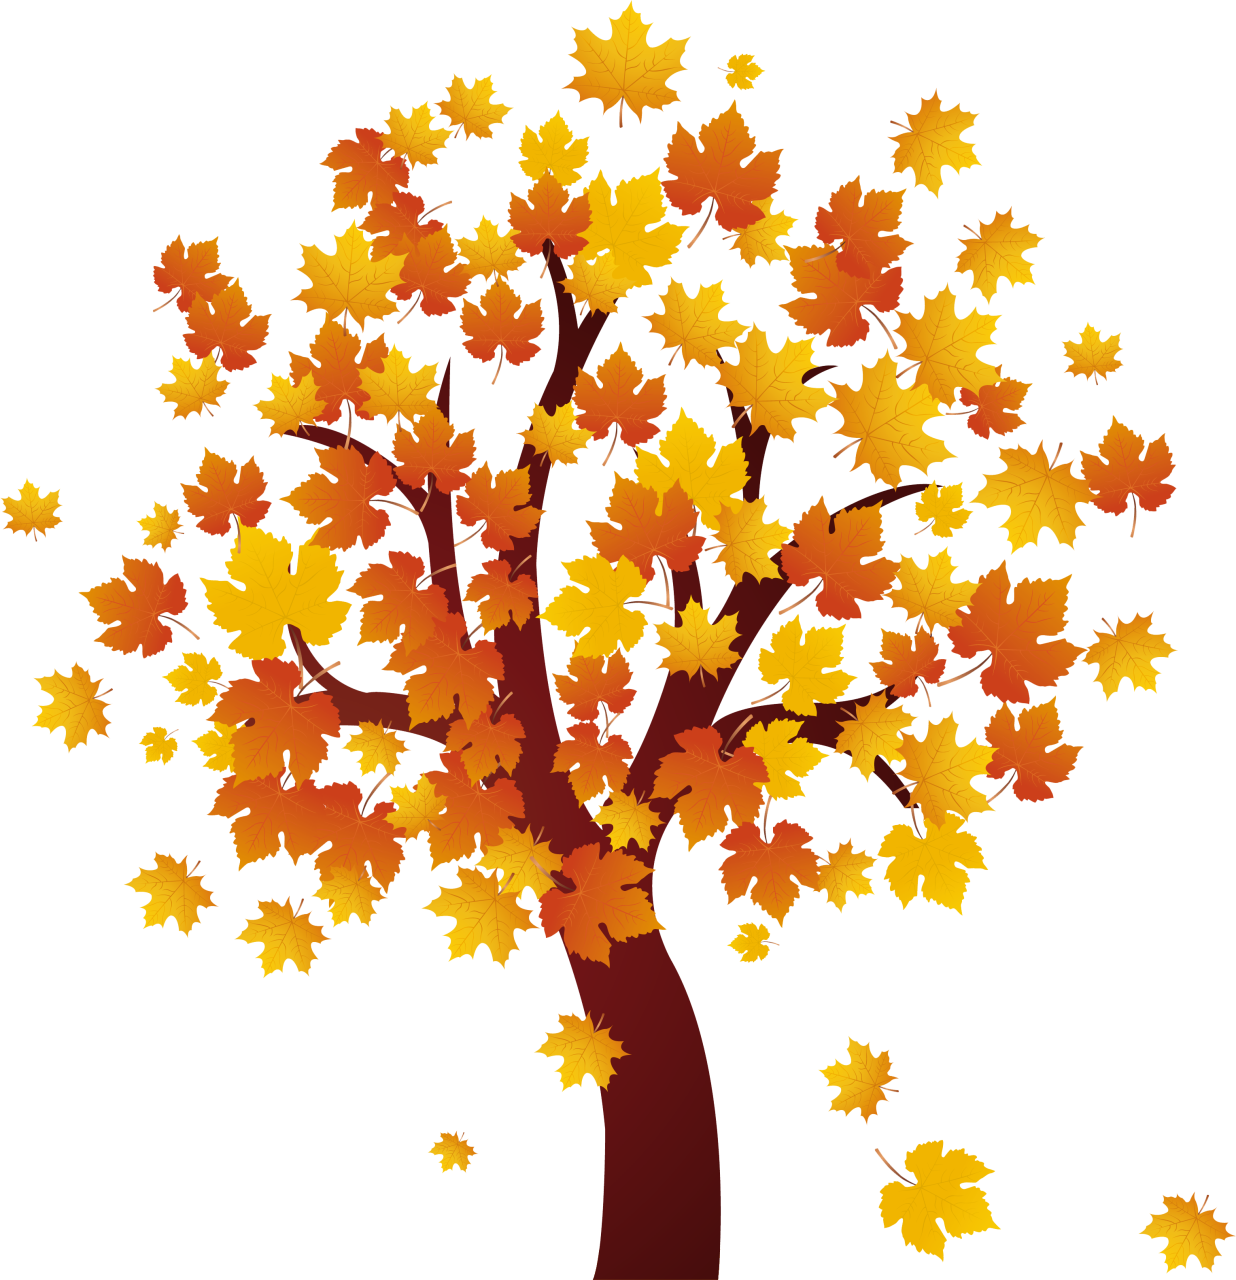 That Others Image Has Been Removed At Th-That Others image has been removed at the request of its copyright owner. fall tree clipart. Free Clipart Of Fall Trees-17